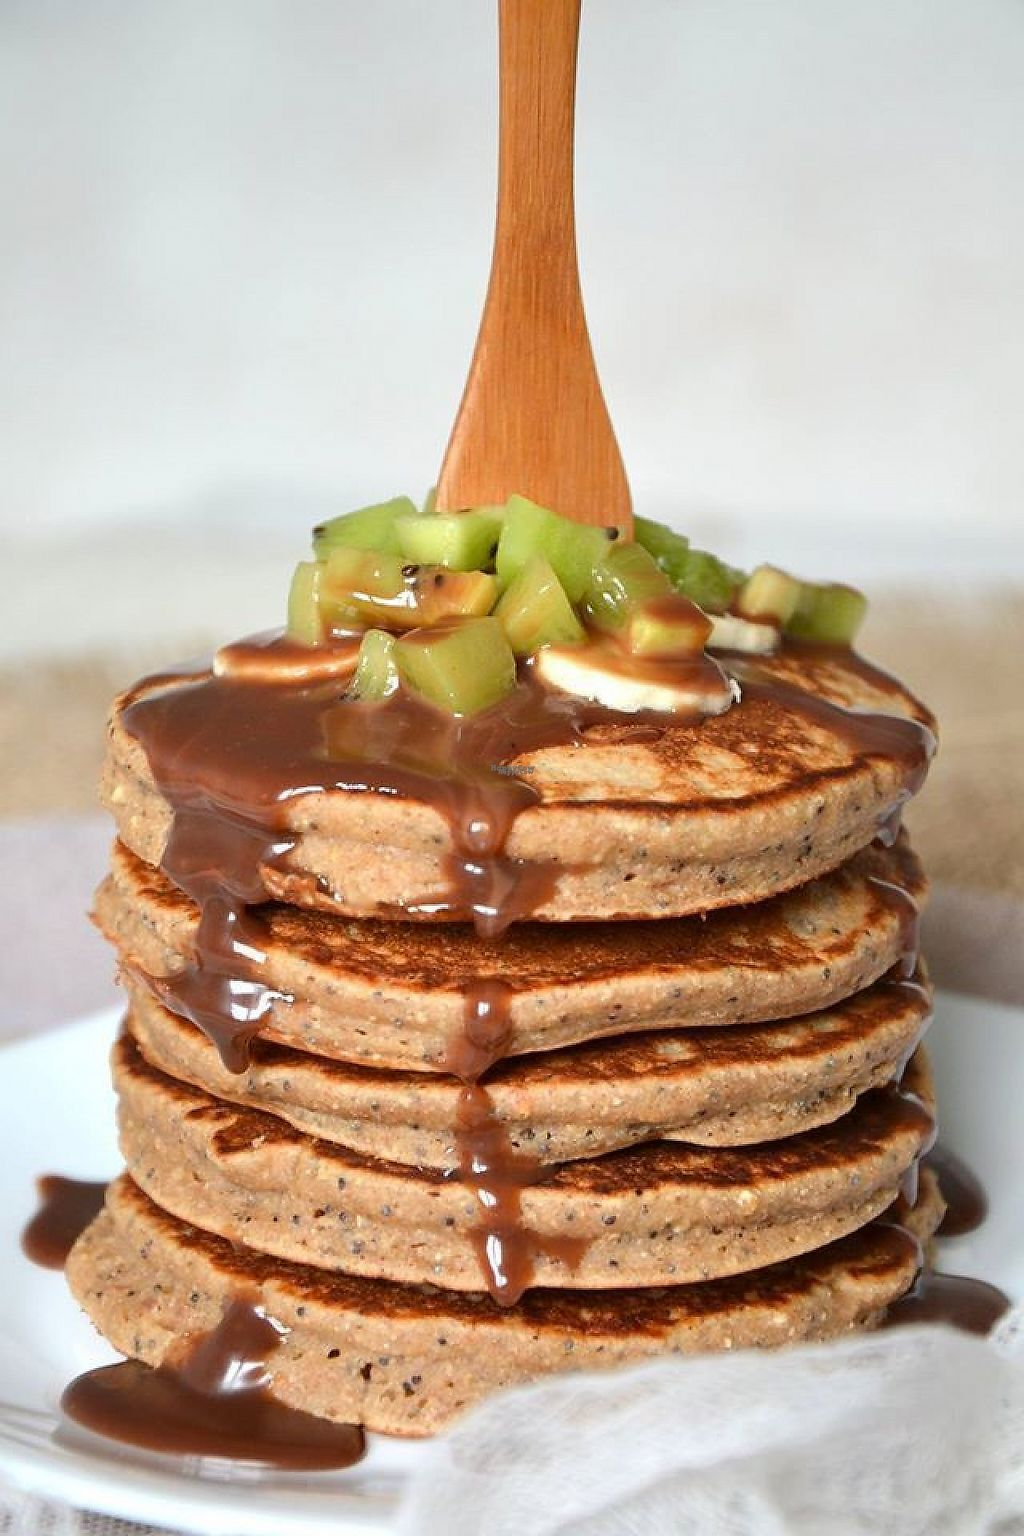 "Photo of La Vie Claire  by <a href=""/members/profile/community"">community</a> <br/>vegan pancakes  <br/> February 4, 2017  - <a href='/contact/abuse/image/72045/221893'>Report</a>"